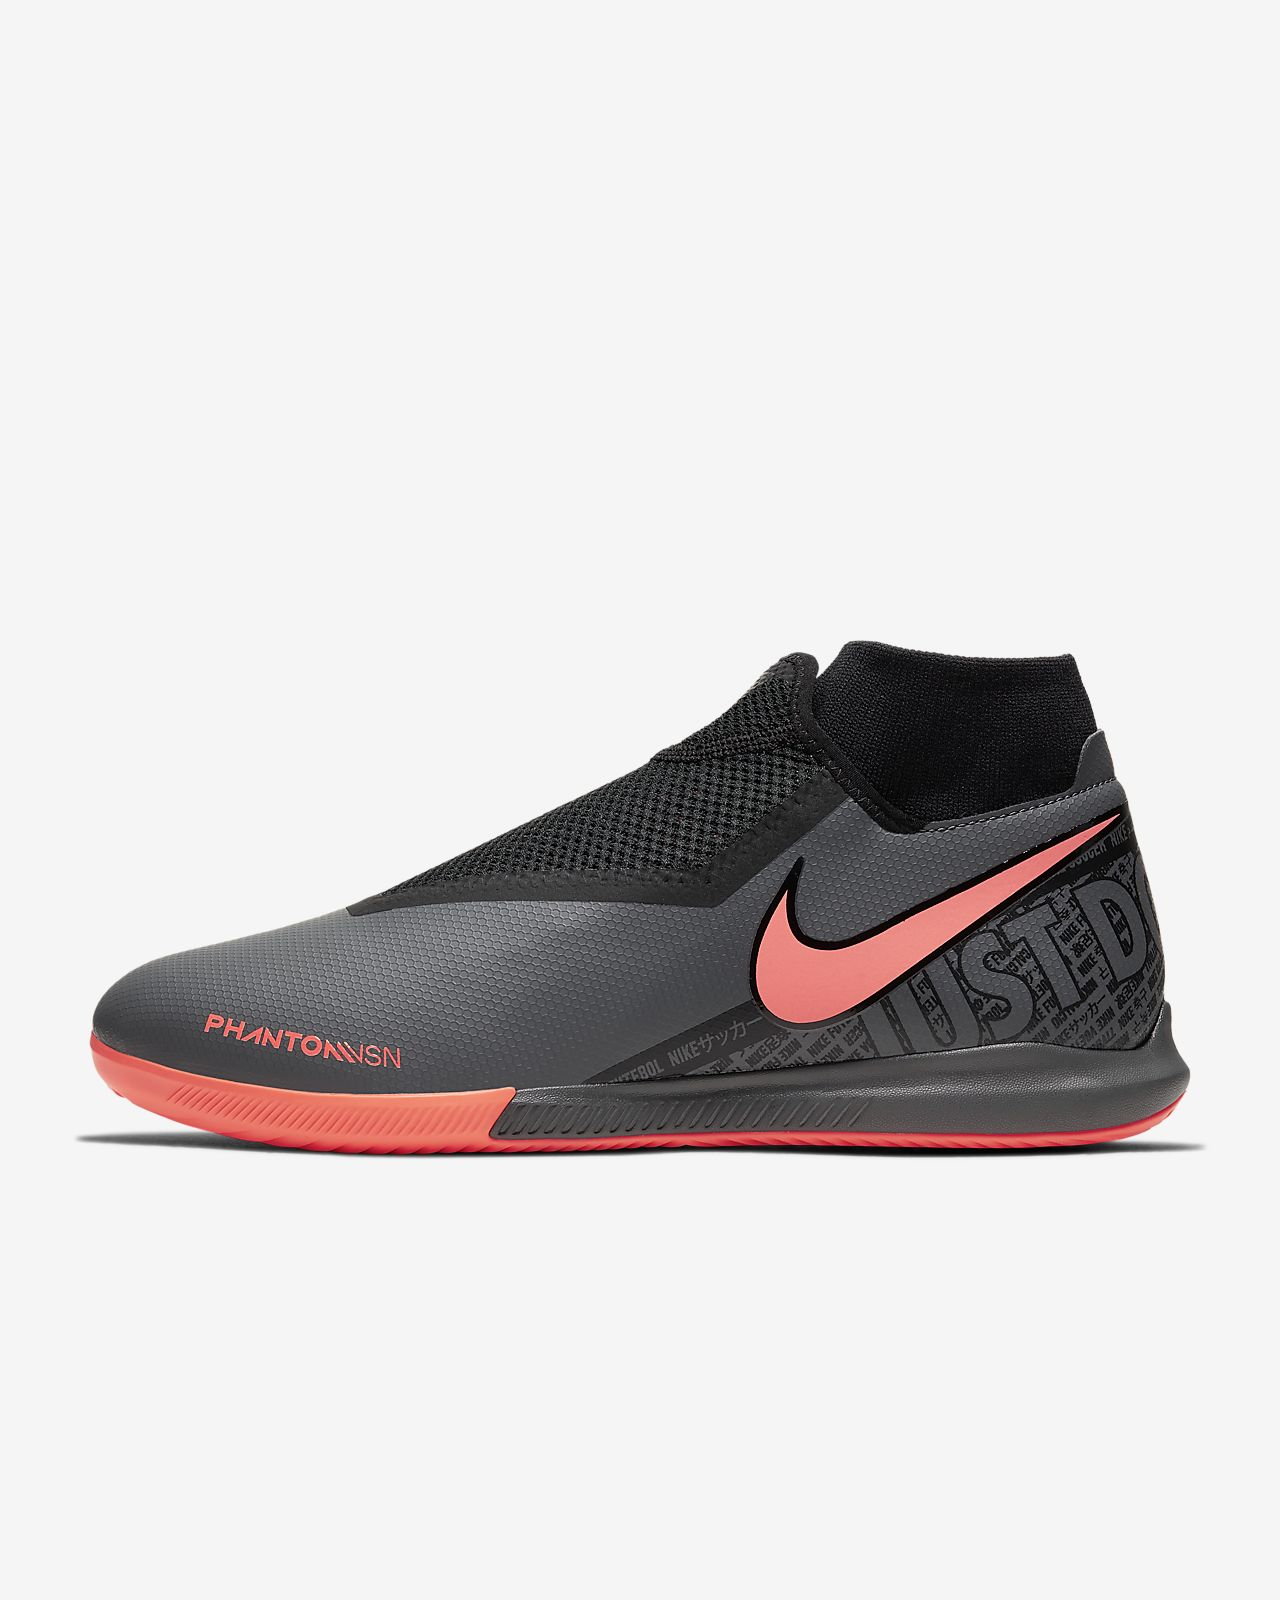 Chaussure de football en salle Nike Phantom Vision Academy Dynamic Fit IC